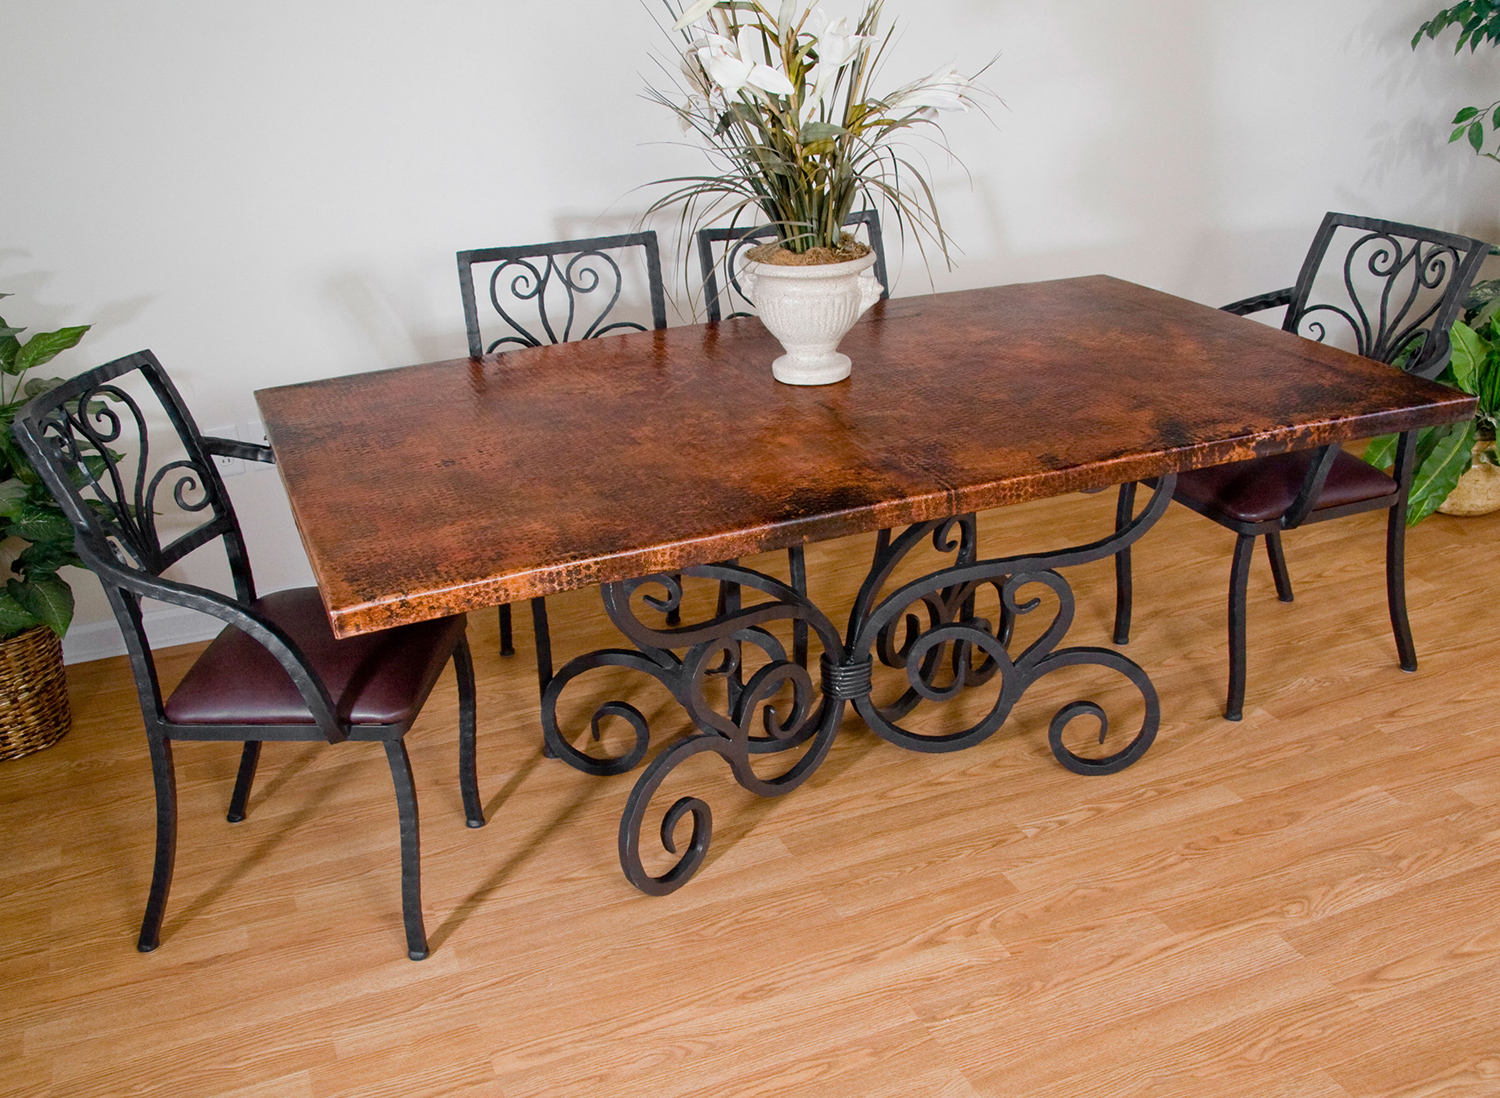 branded wrought iron tables three featured manufacturers artisan crafted iron furnishings. Black Bedroom Furniture Sets. Home Design Ideas